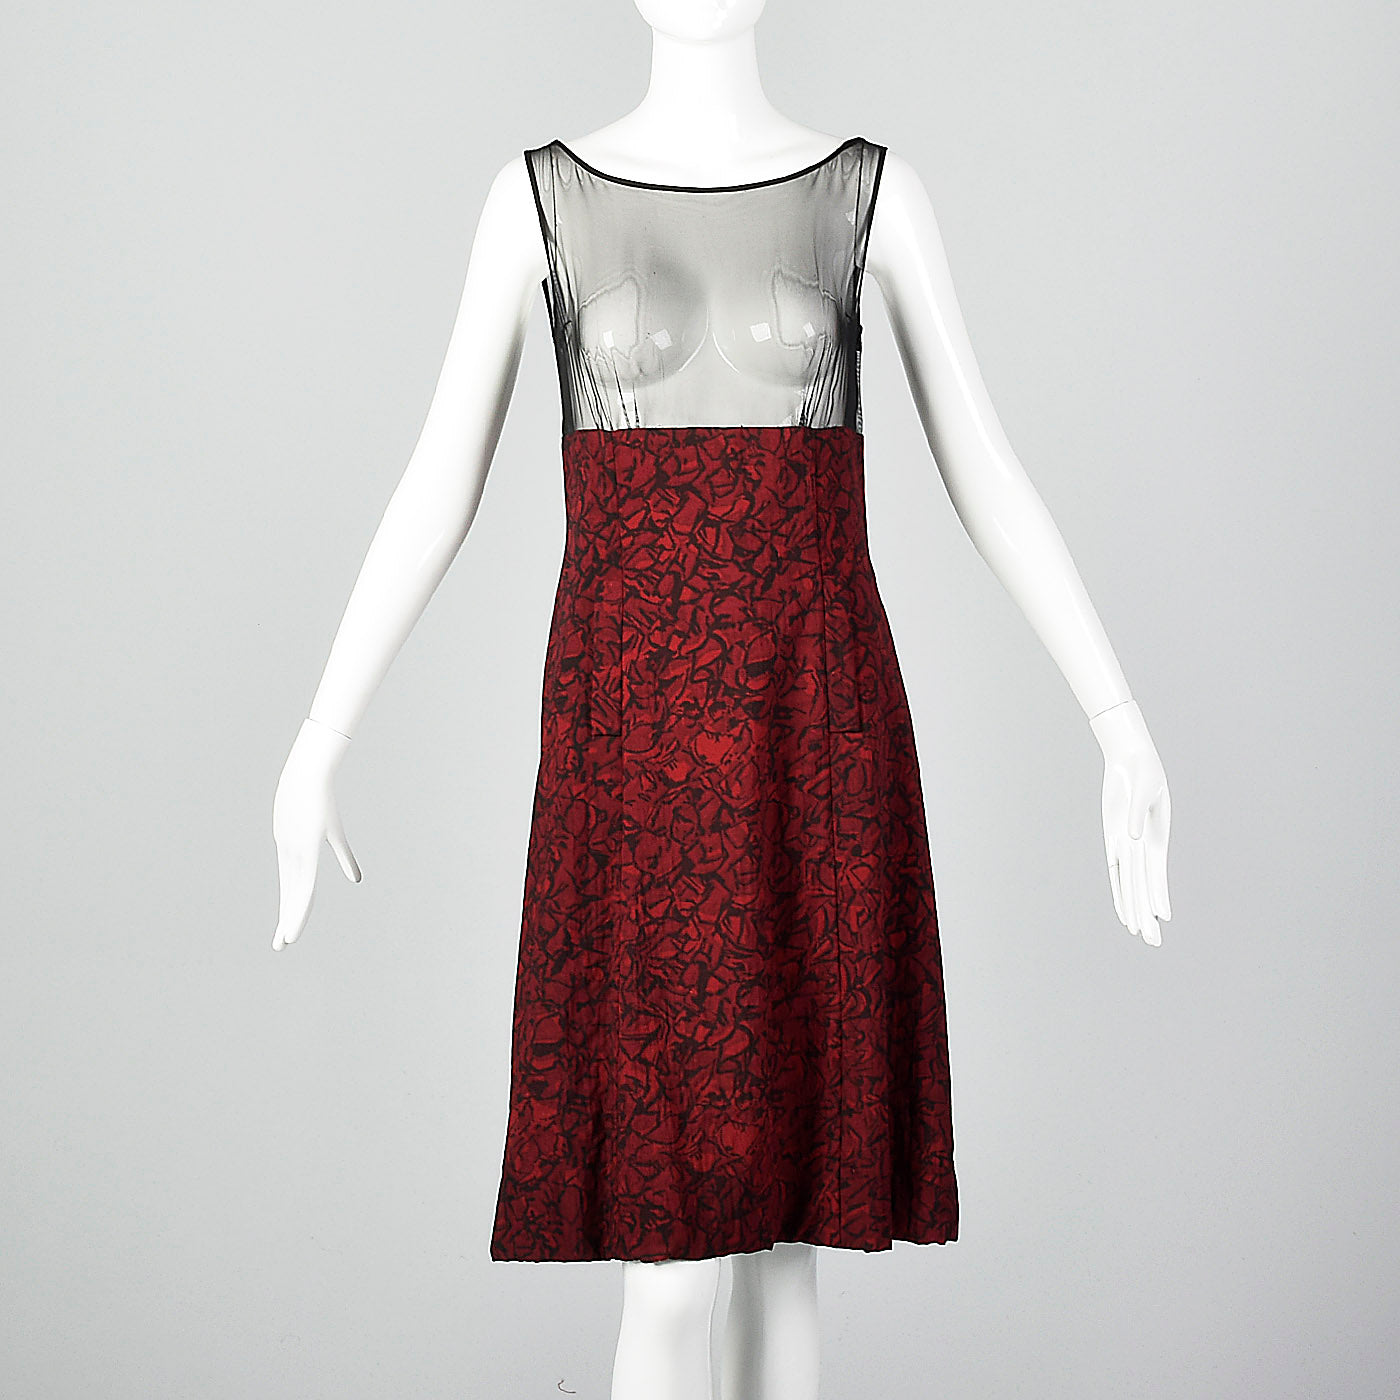 1960s Black and Red Print Dress with Mesh Bodice and Matching Overlay Top